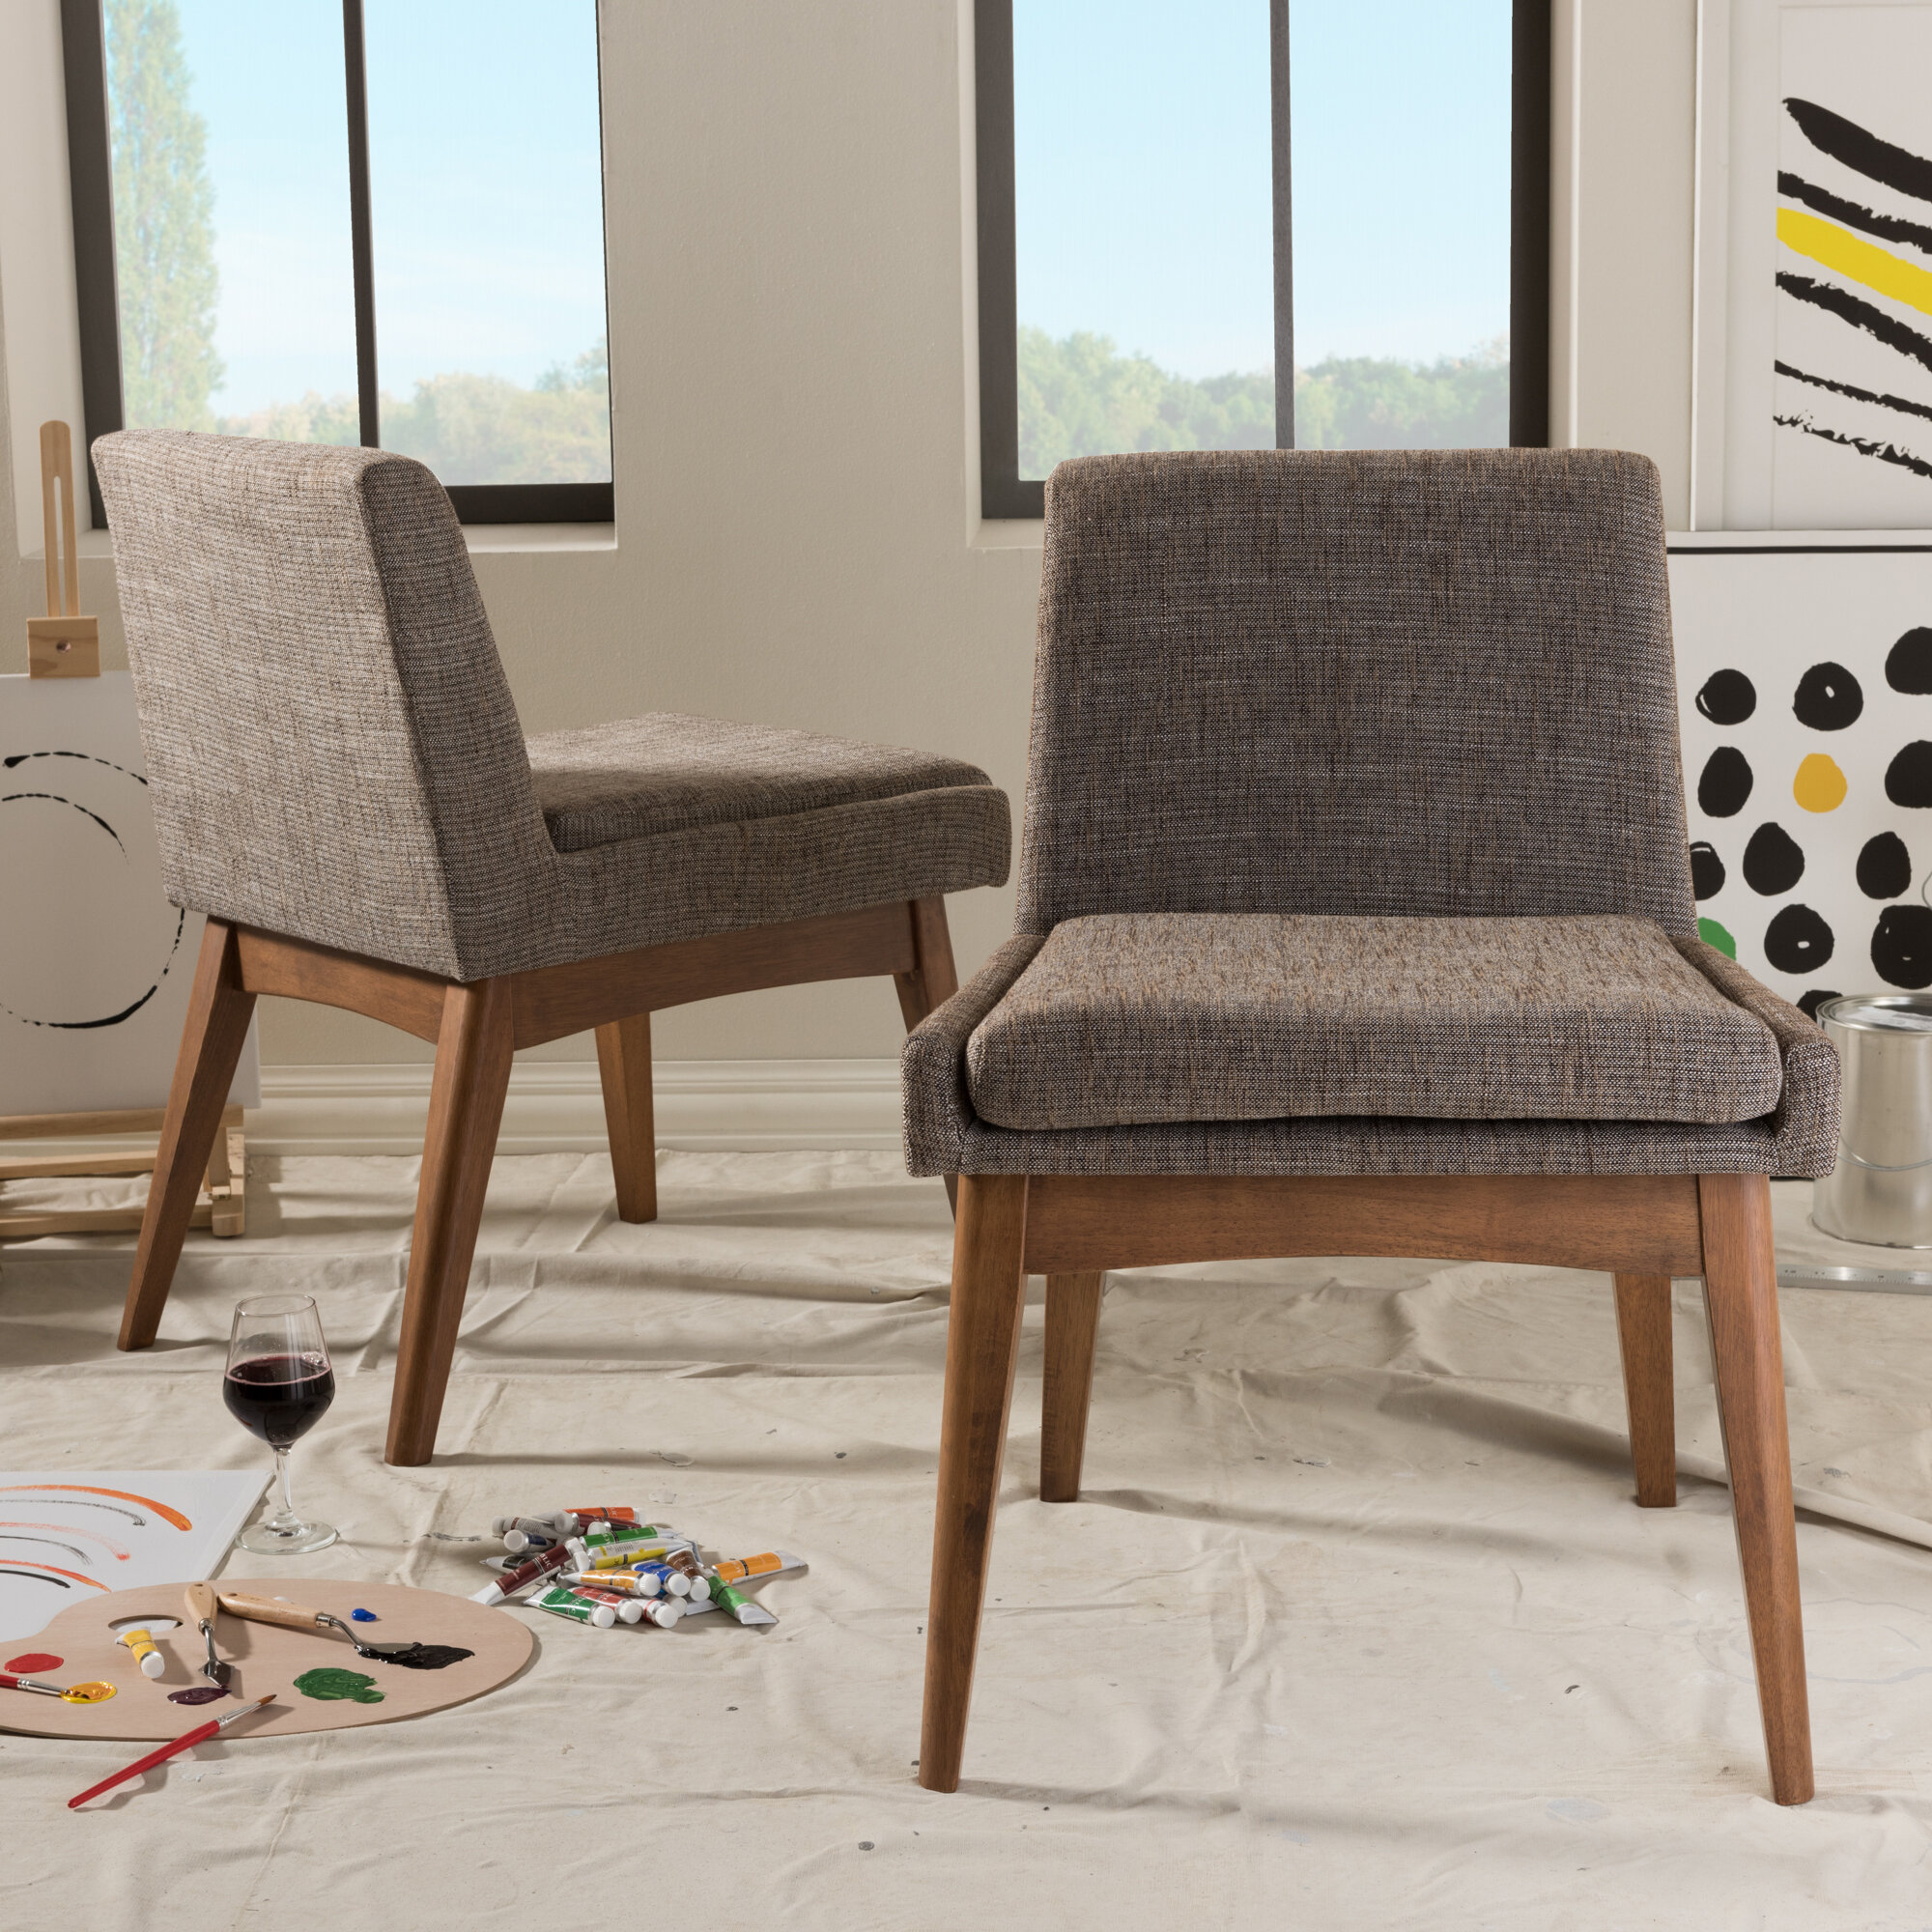 Stupendous Stallman Mid Century Modern Upholstered Dining Chair Gmtry Best Dining Table And Chair Ideas Images Gmtryco